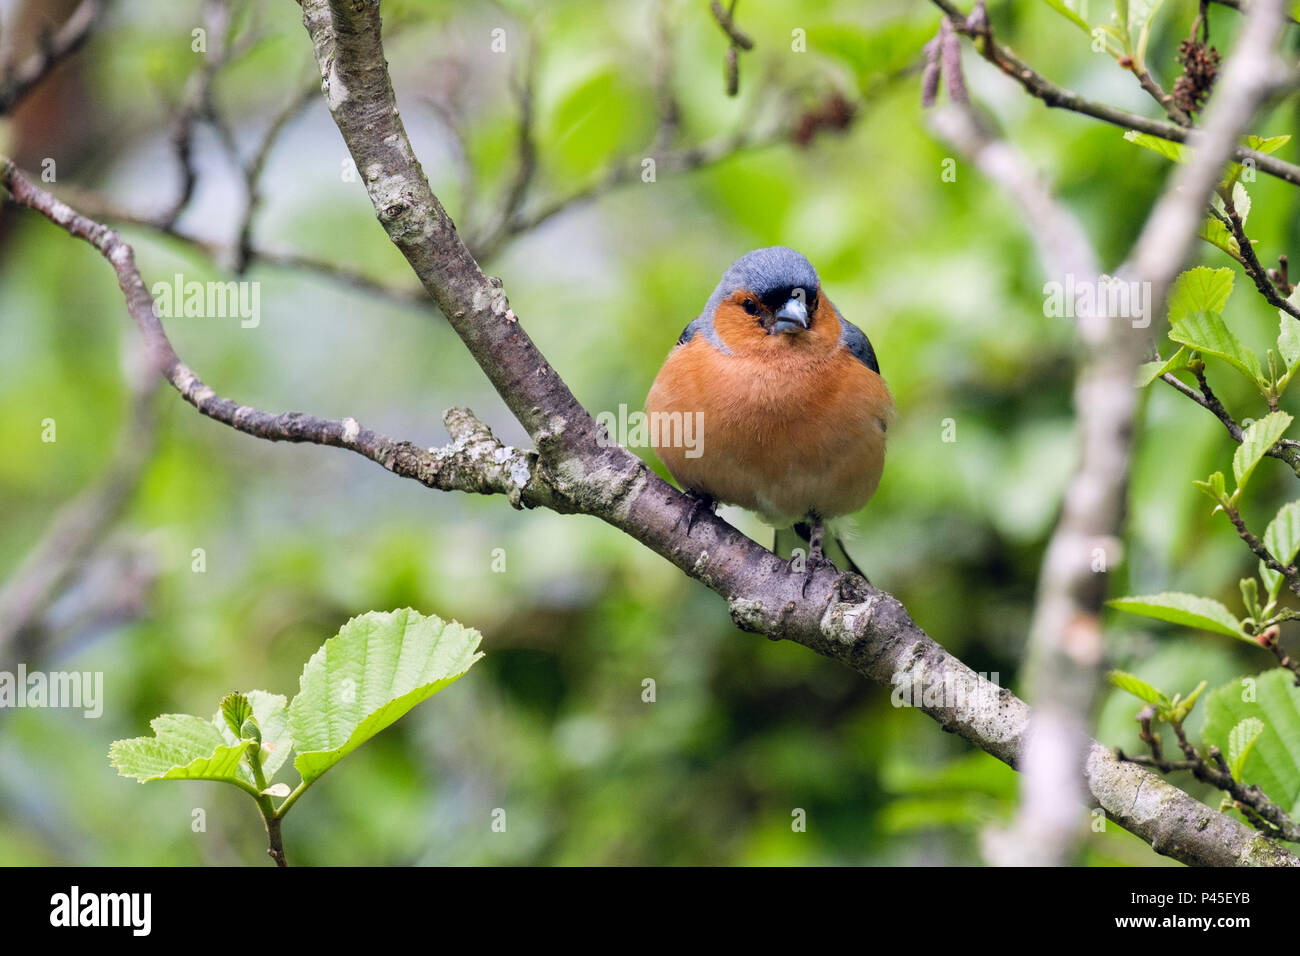 Male Common Chaffinch (Fringilla coelebs) bird in spring plumage on a Beech tree branch in a garden hedgerow. Wales, UK, Britain - Stock Image